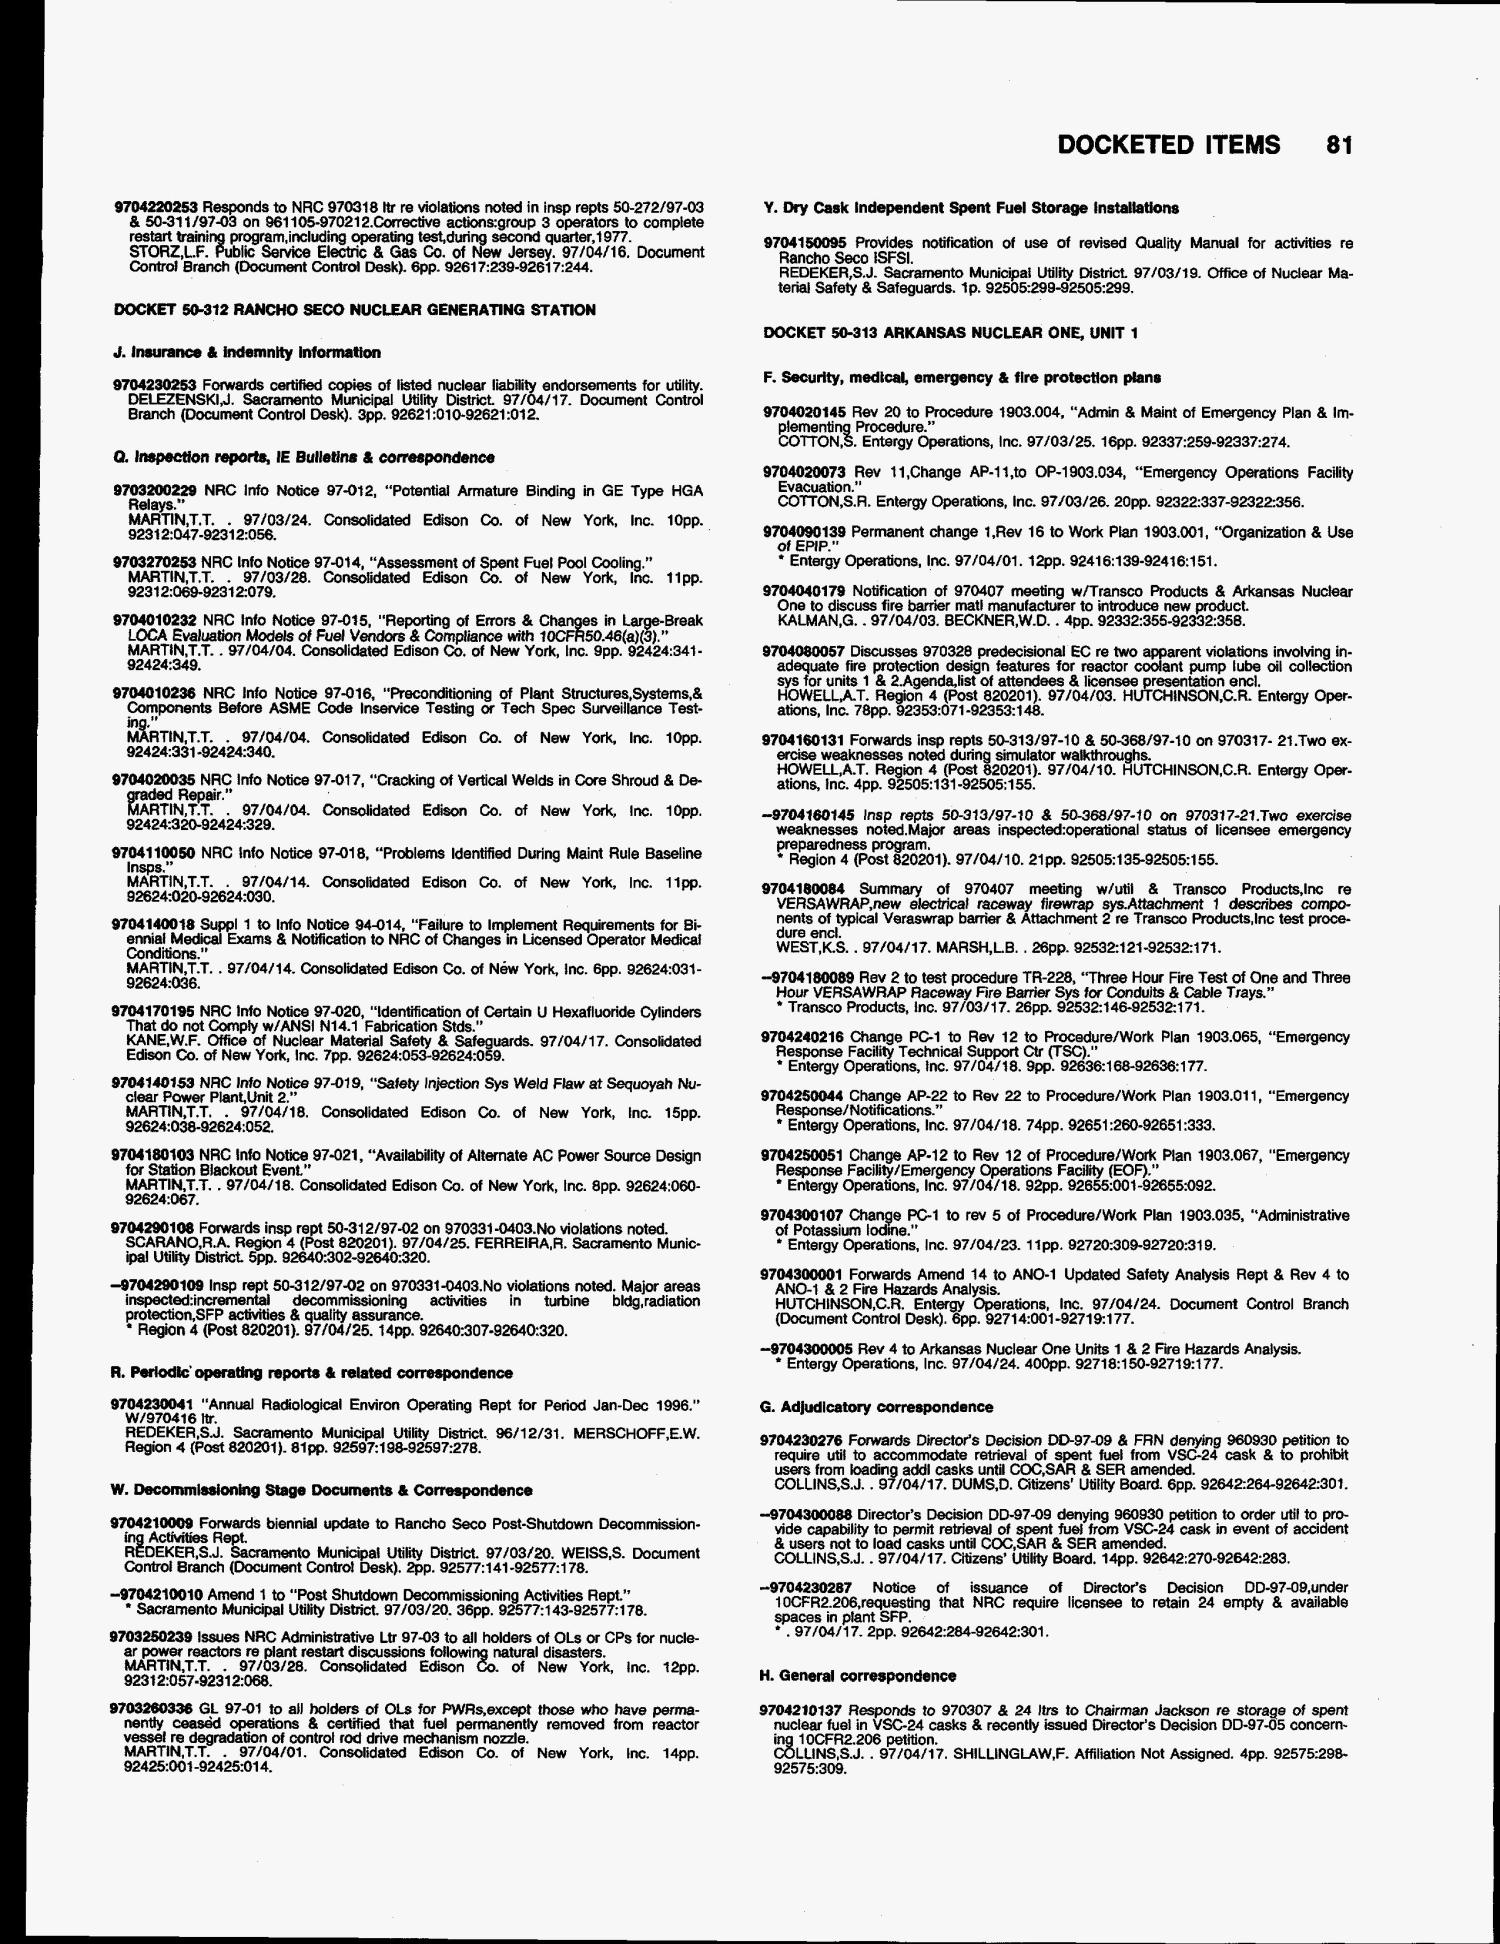 Title list of documents made publicly available, April 1--30 1997